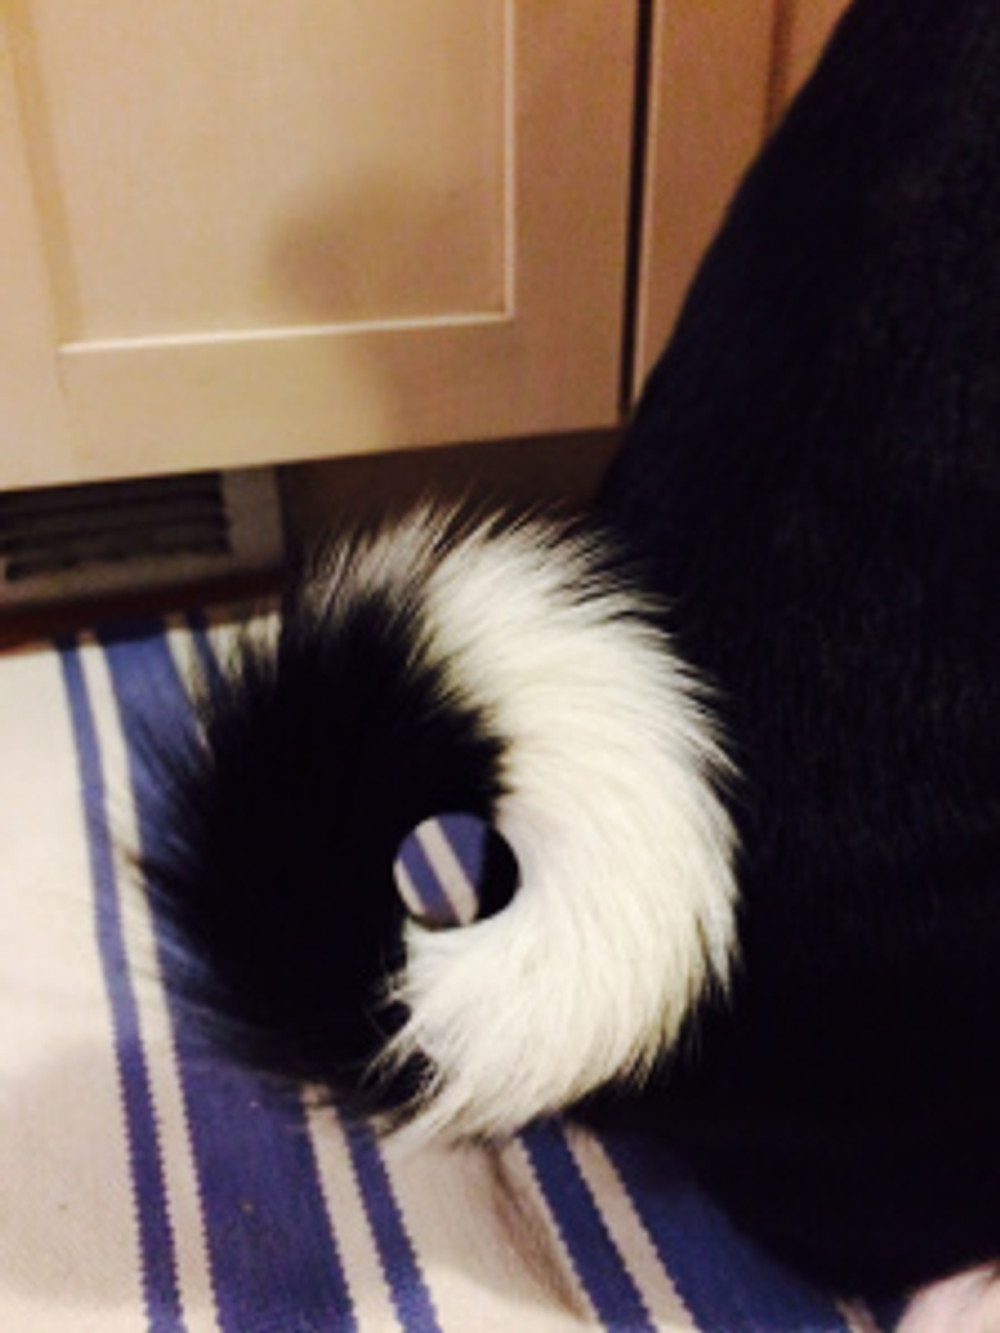 Storm's tail.